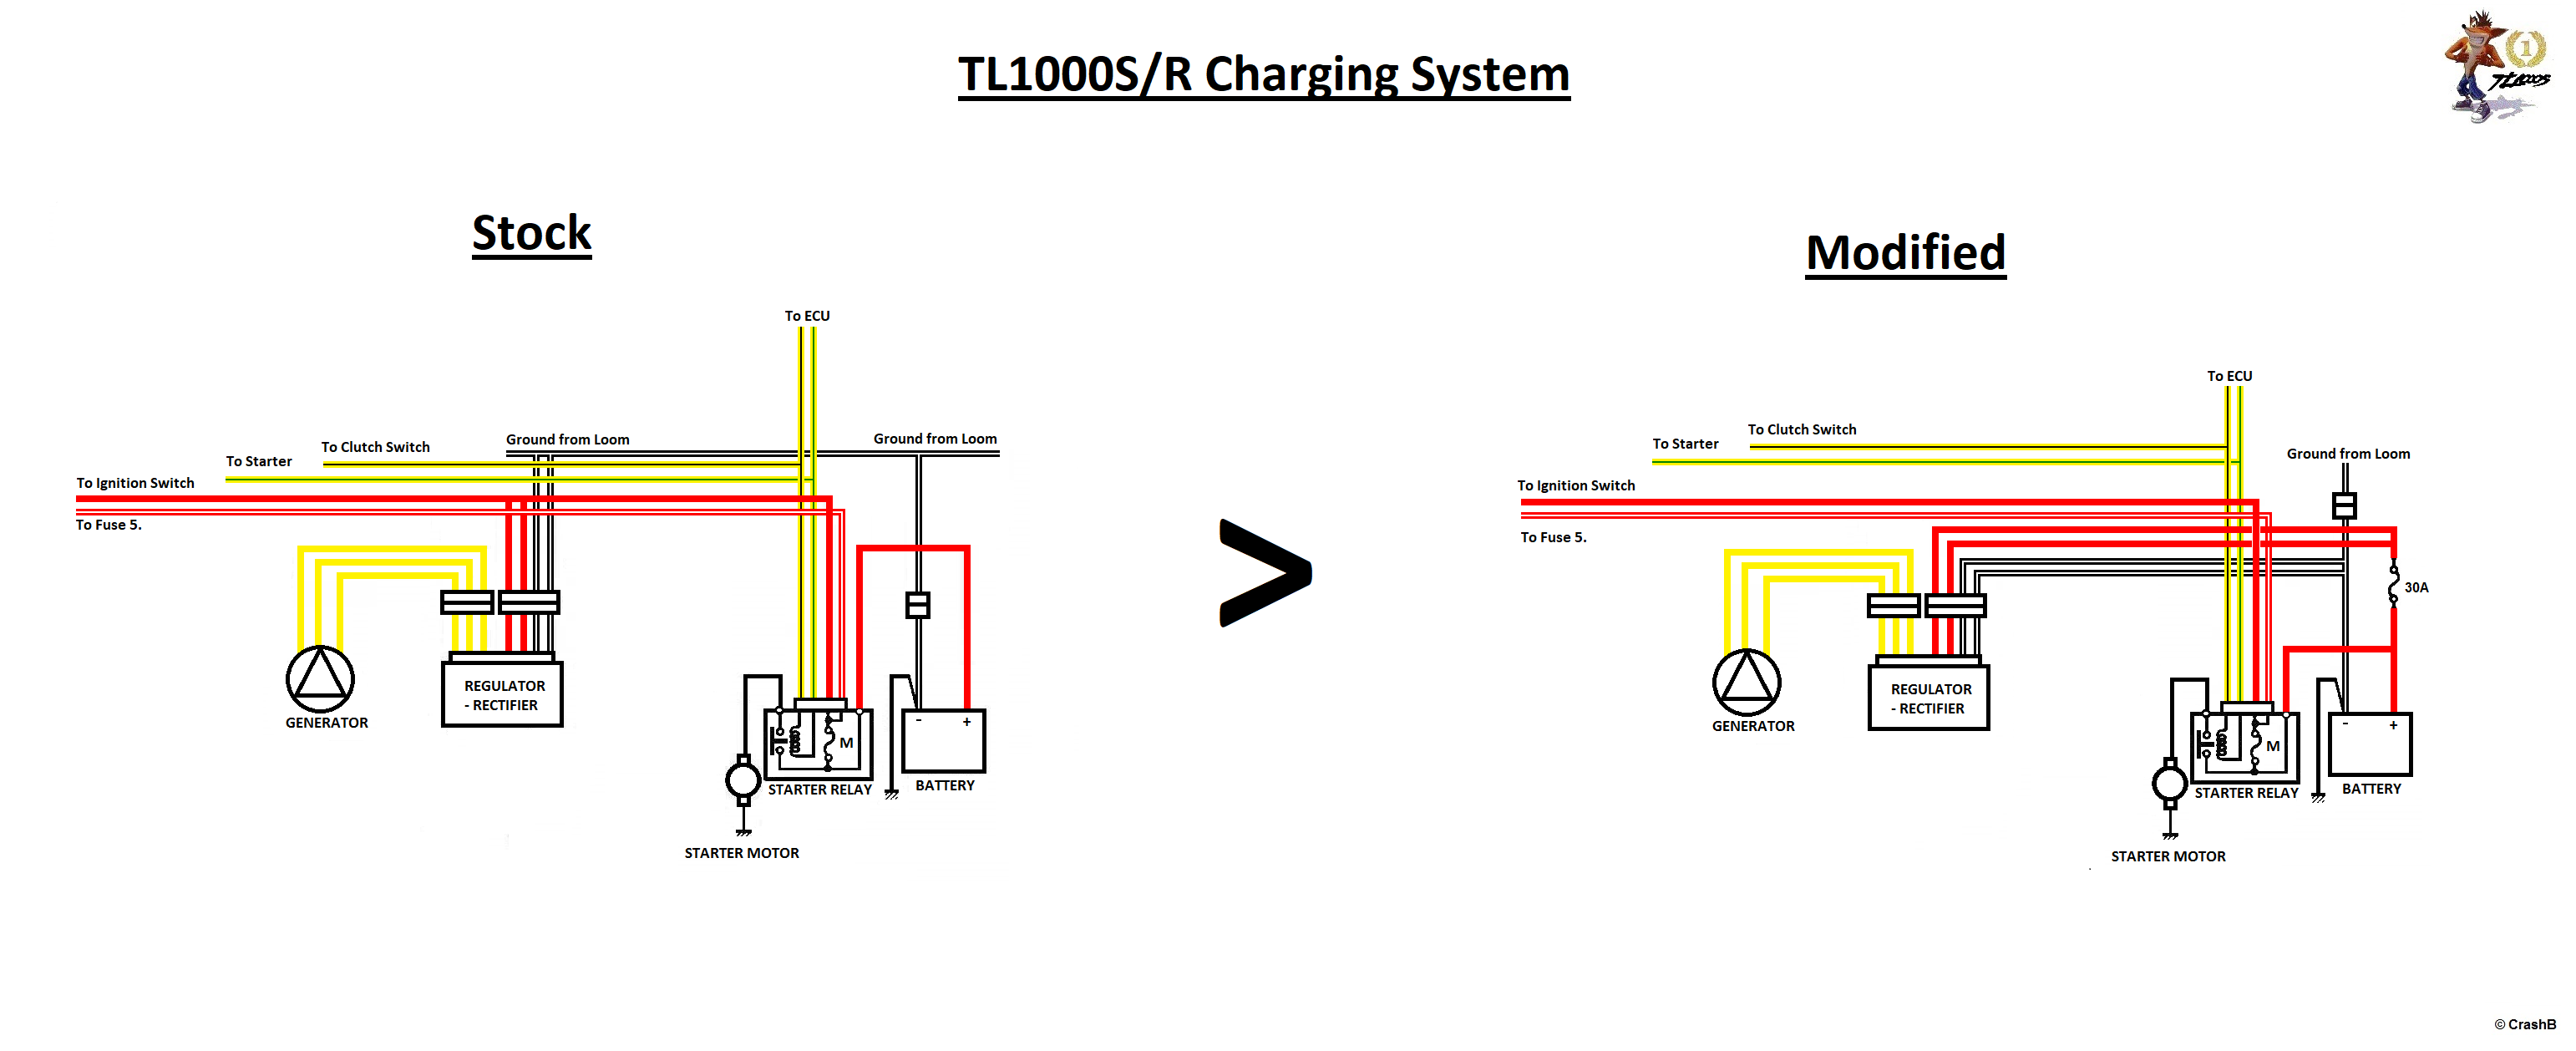 More Wiring Diagrams - Pared down-charging-system-mods.png